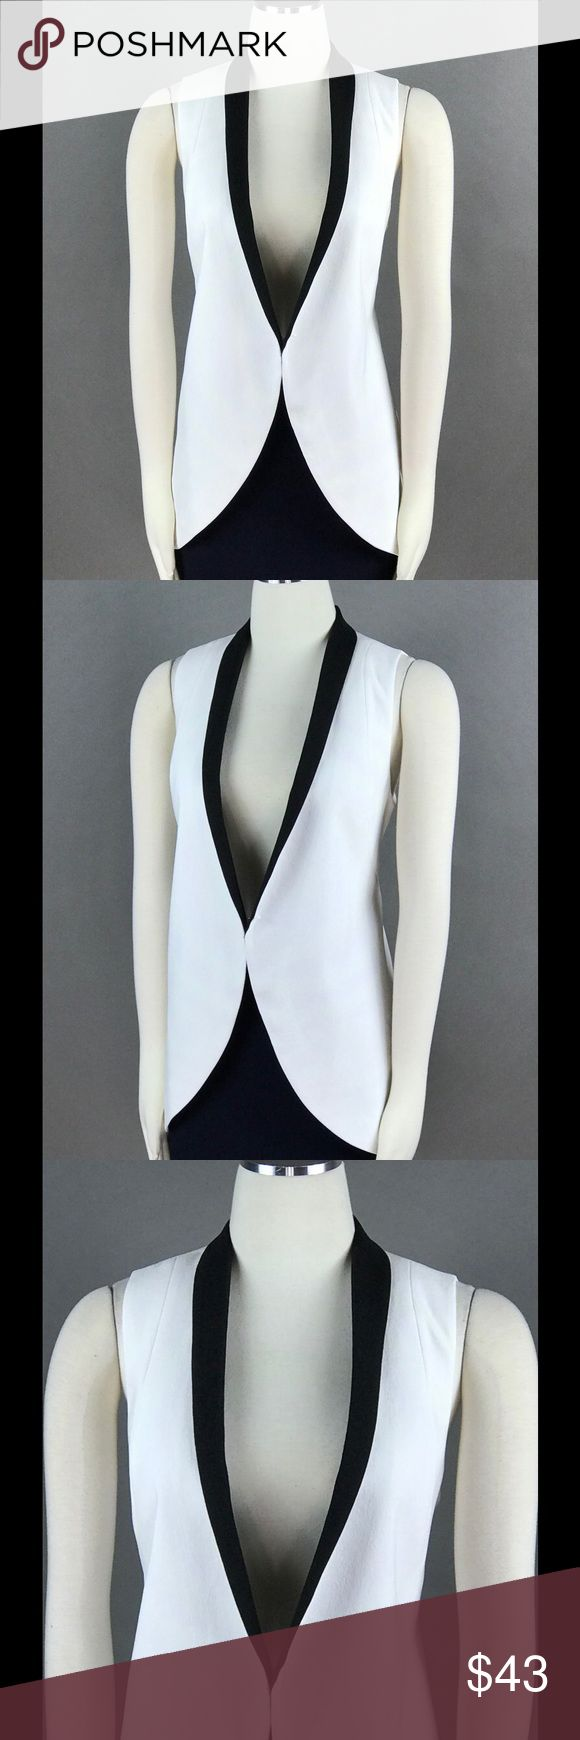 BCBGeneration White Black Vest Top NEW BCBGeneration White Black Vest Top Size S Crepe Colorblocked Open Front Sleeveless $148 NEW BCBGeneration Jackets & Coats Vests